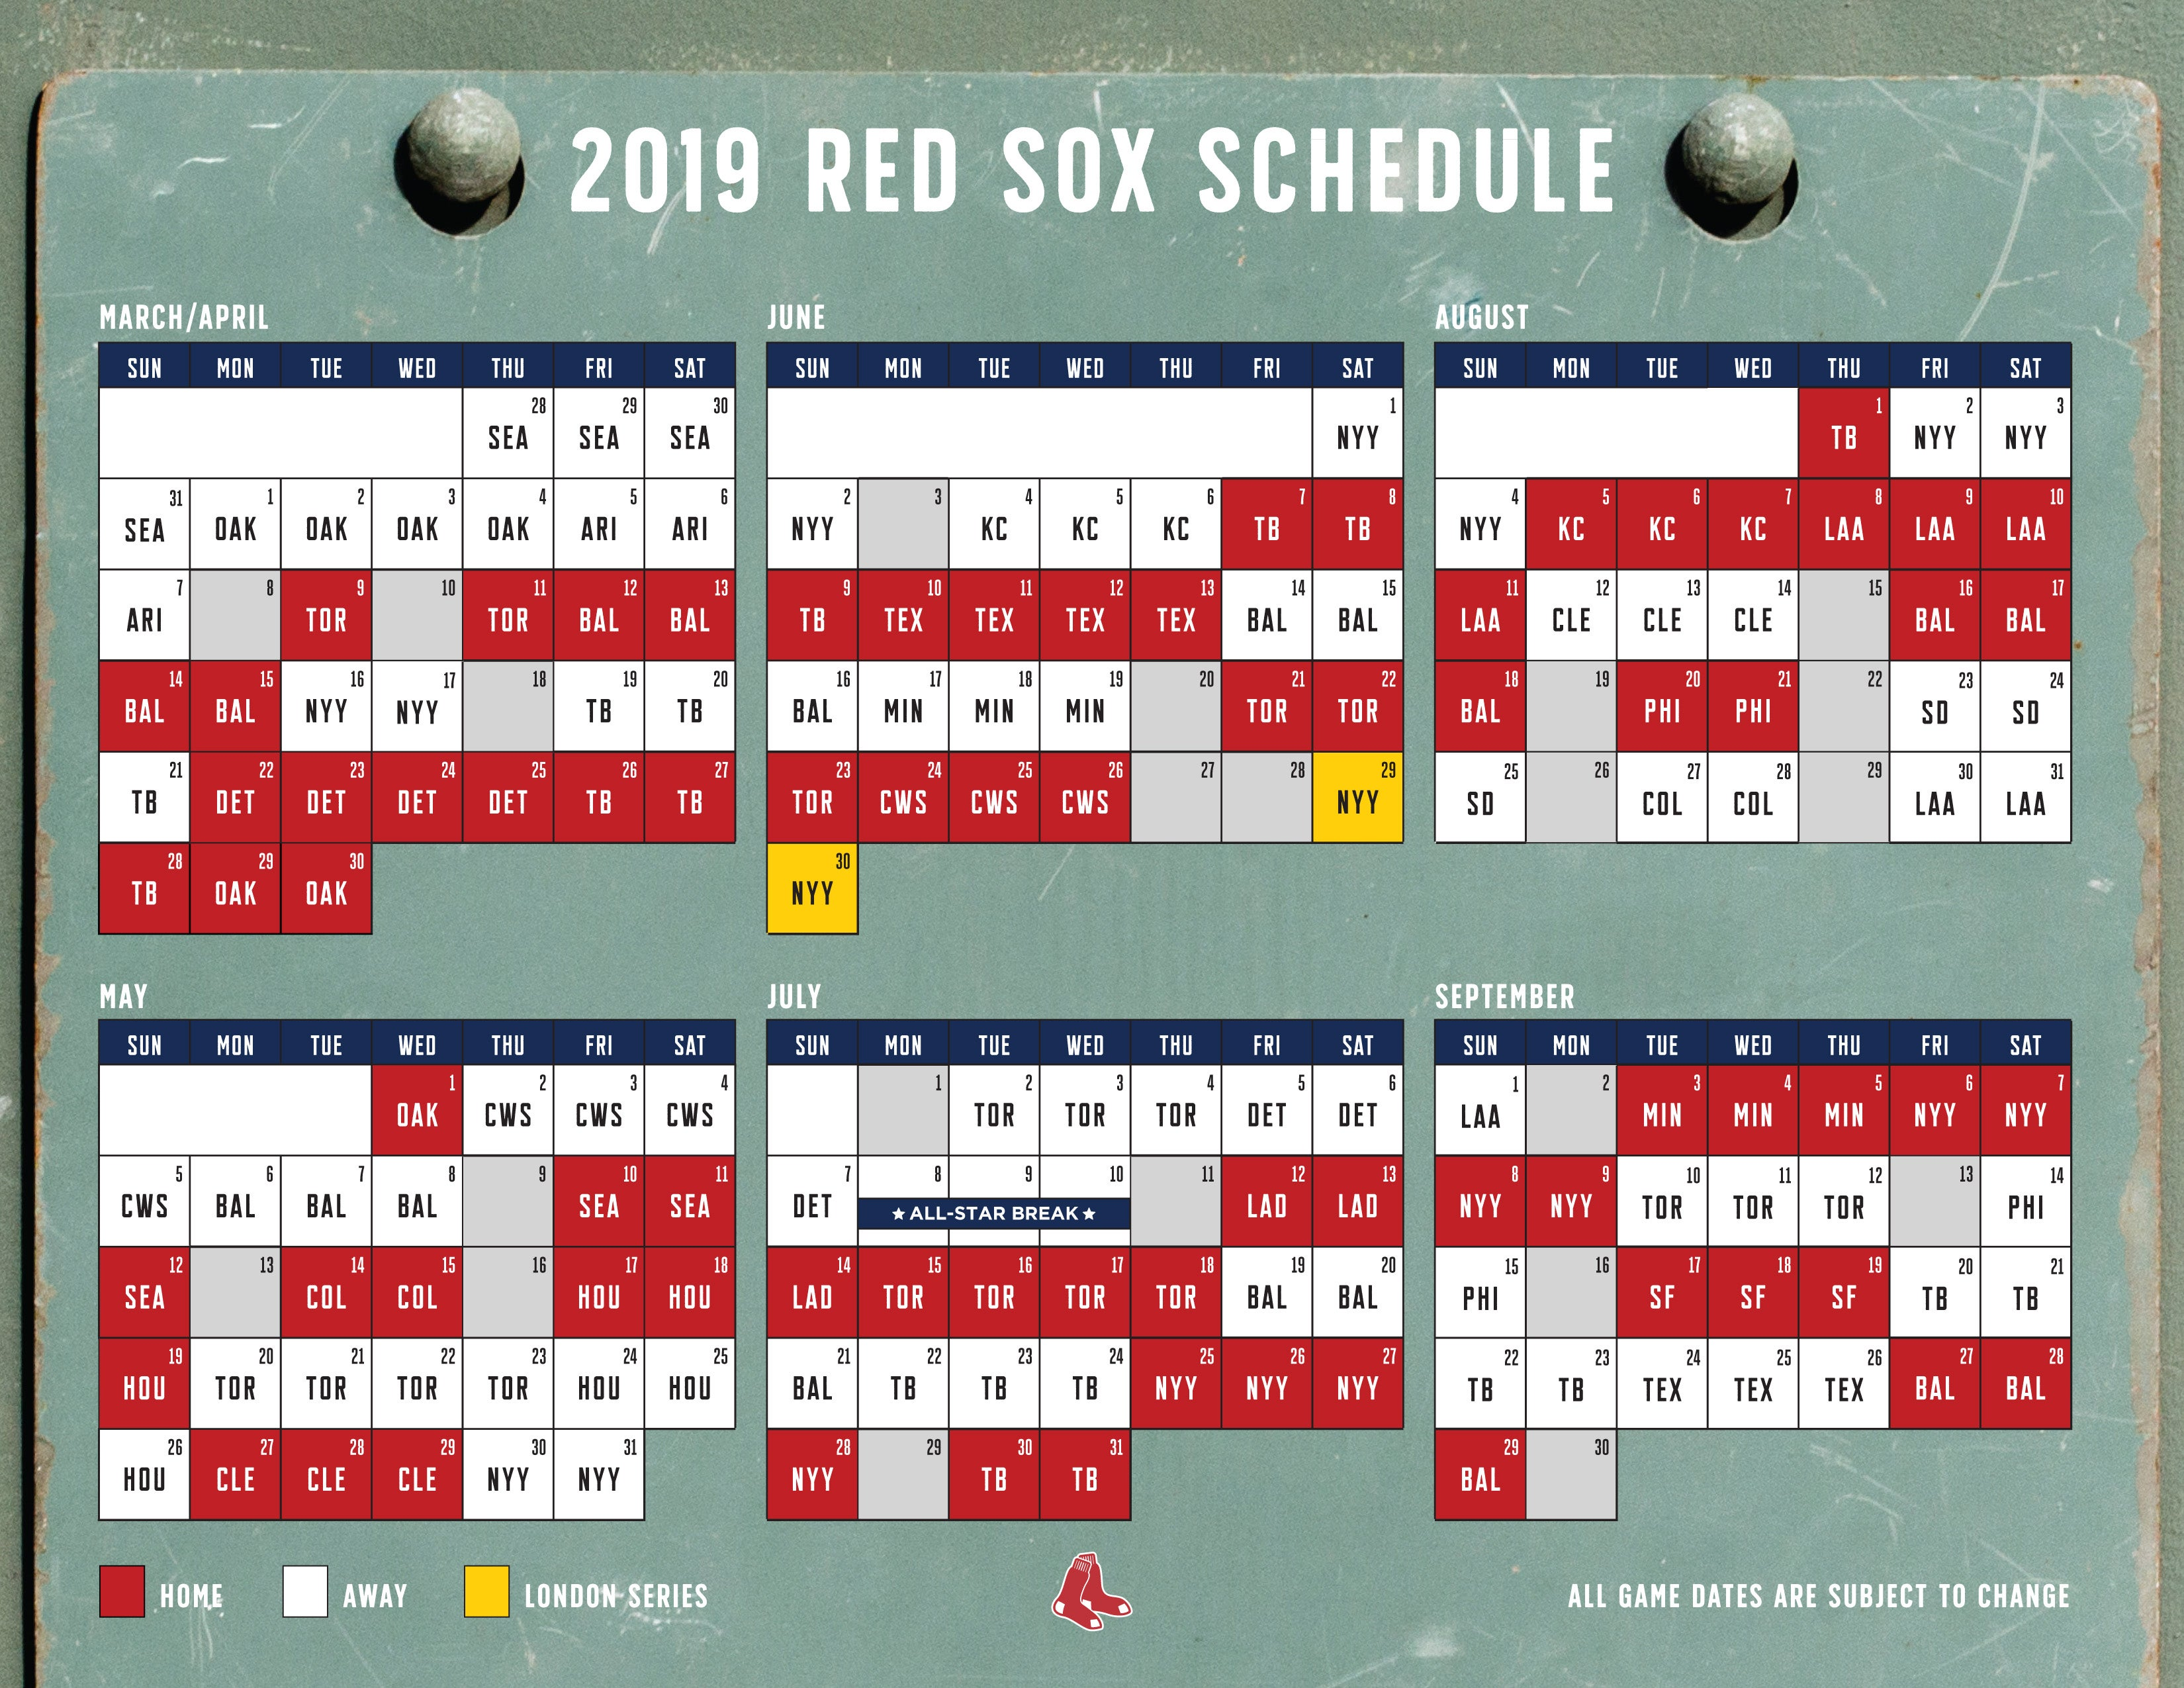 Red Sox Calendar 2019 Here's the Red Sox schedule for the 2019 season | Boston.com